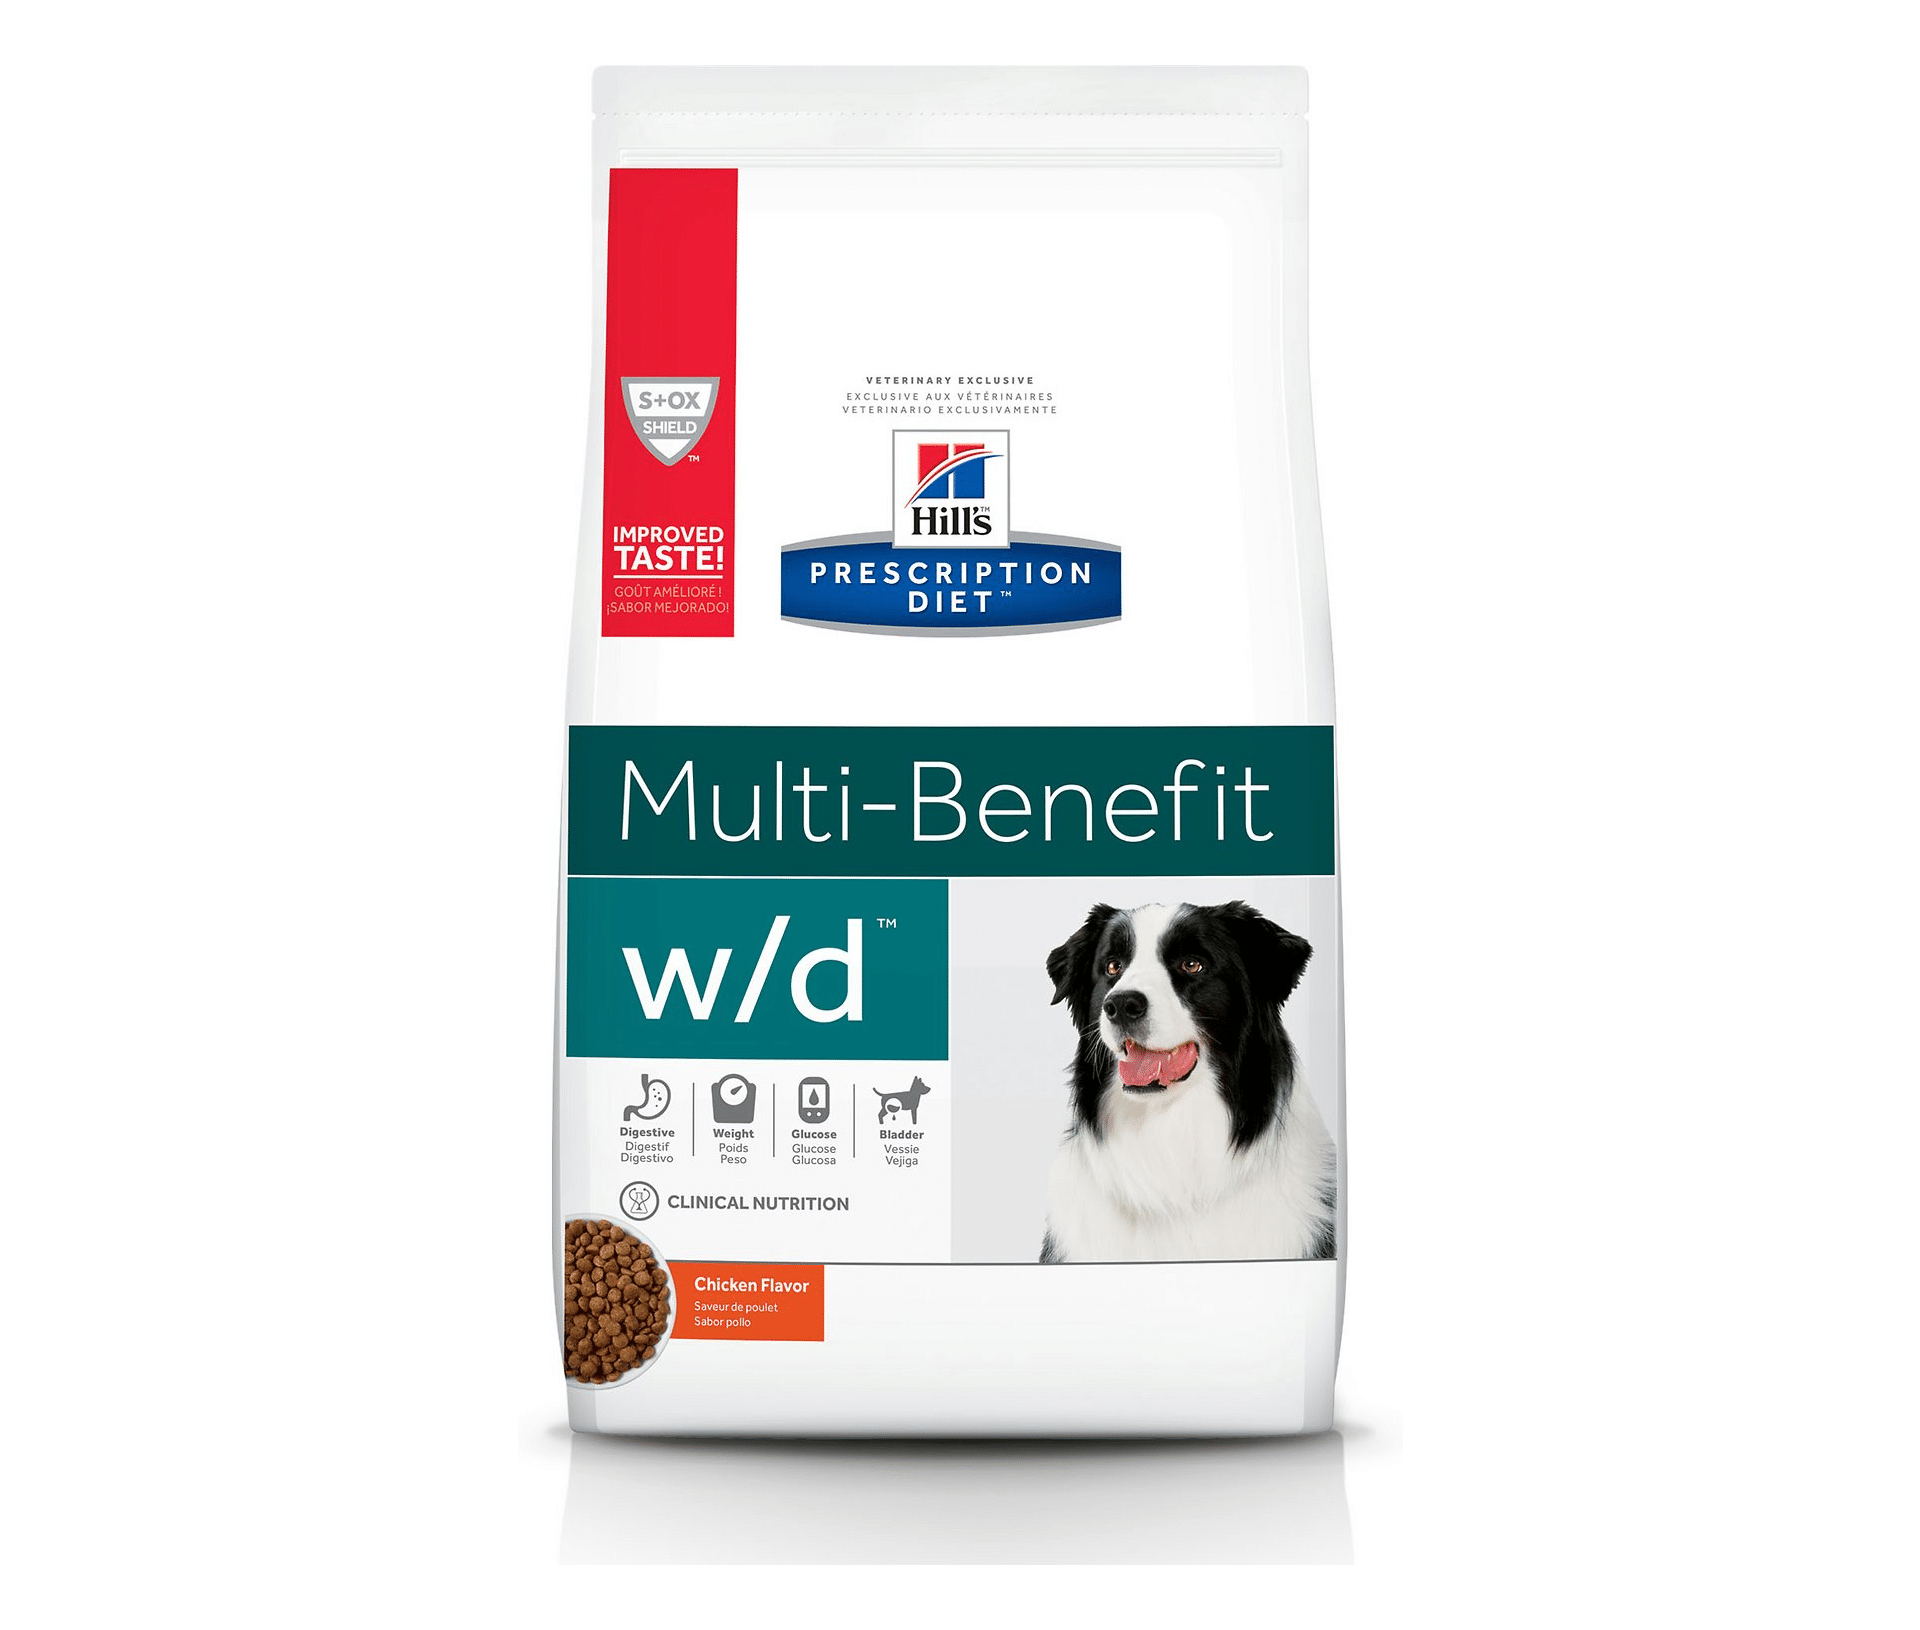 Hill's Prescription Diet w/d Multi-Benefit Chicken Flavor Dry Dog Food